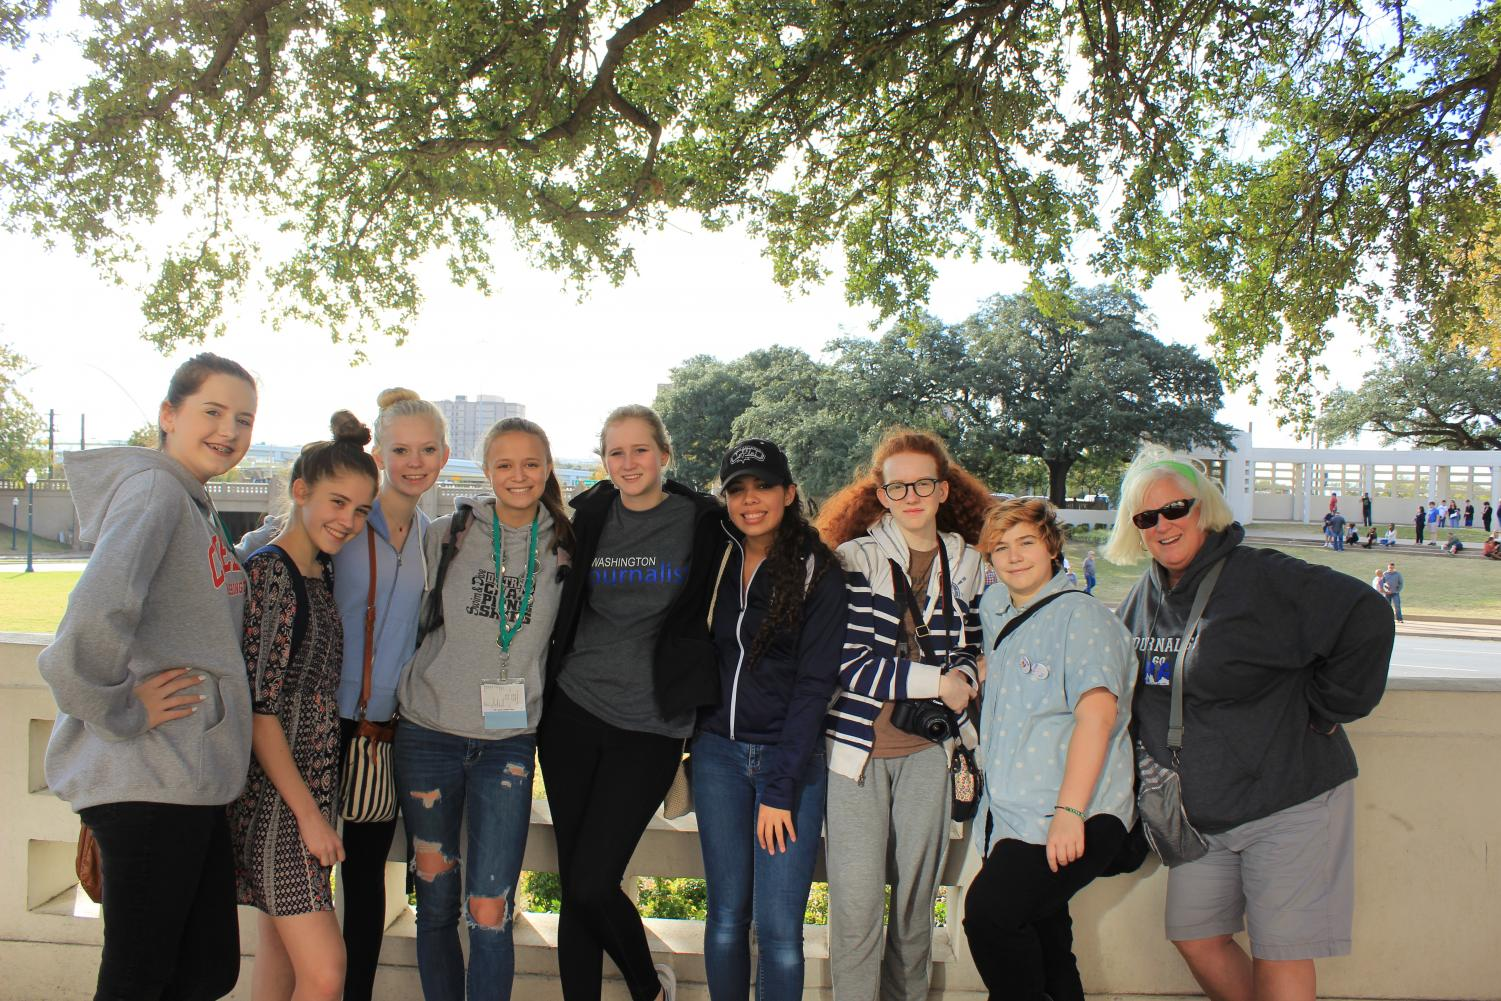 2017-18 yearbook and newspaper staff enjoy sightseeing in Dallas after competing in the fall annual JEA and NSPA journalism competition. Names listed from left to right: Ashleigh Johnson, Katherine Wallace, Claire Willis, Hadley Olson, Chelsea Bagwell, Ciara Greene, Alex Blashwood, Kai Cole, and Mrs. Robin Smith. Image taken by yearbook and newspaper advisor, Mr. Roland Smith.